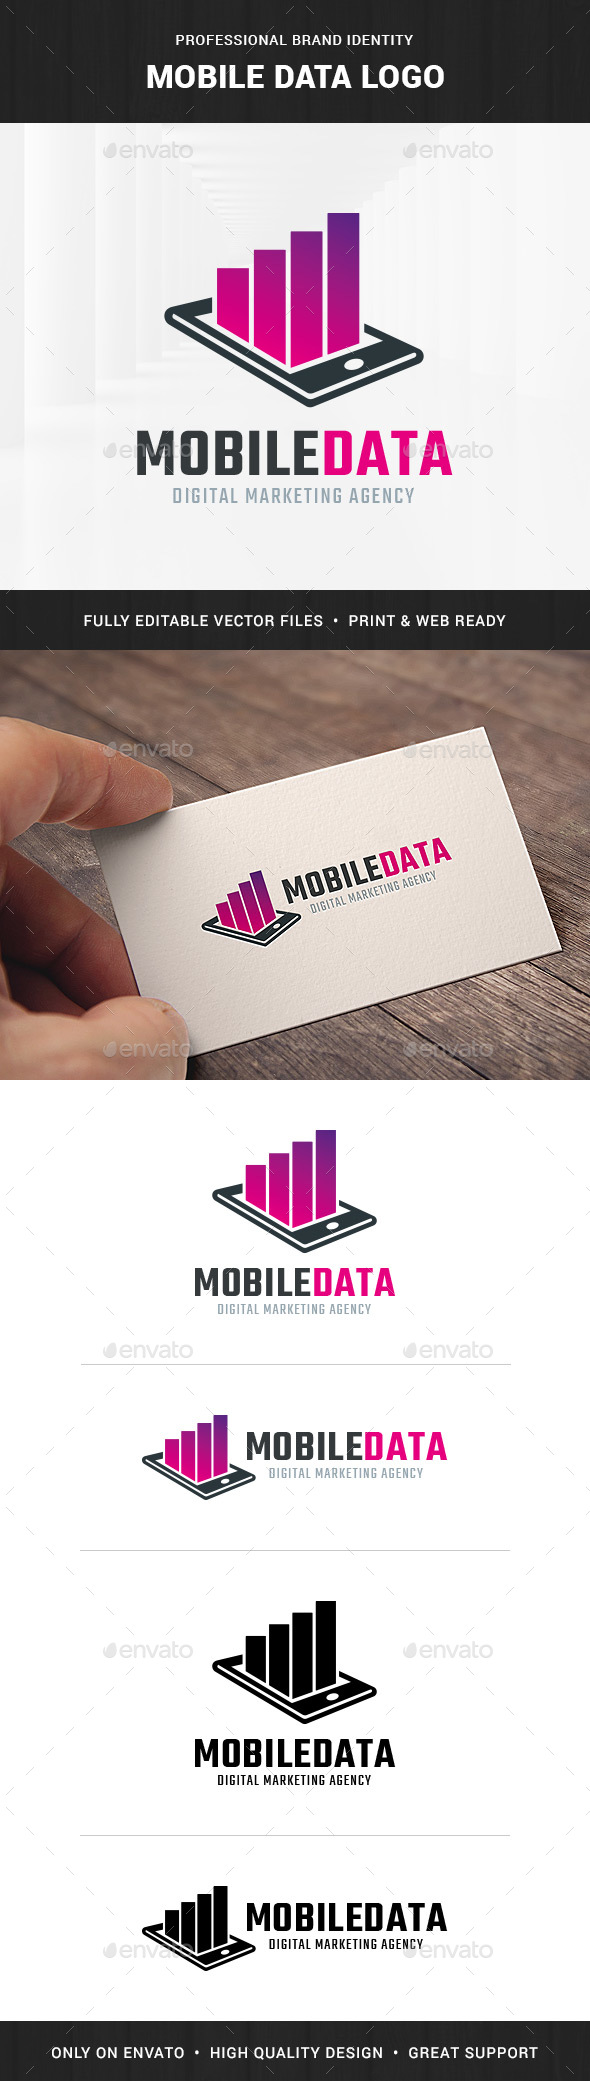 Mobile Data Logo Template - Objects Logo Templates